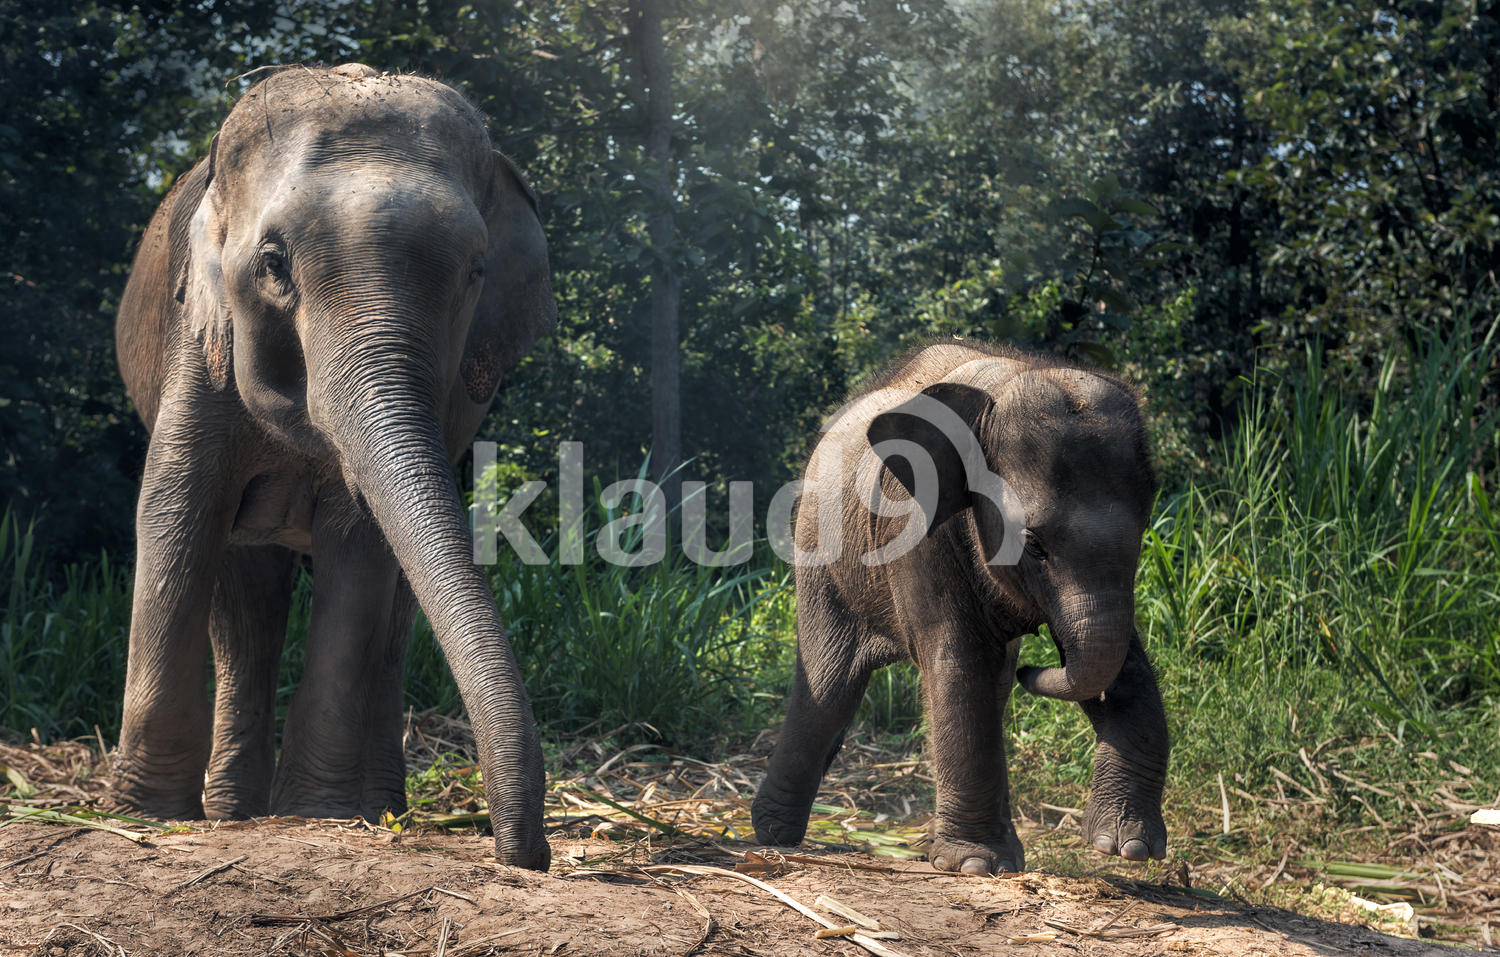 Mother elephant with young elephant